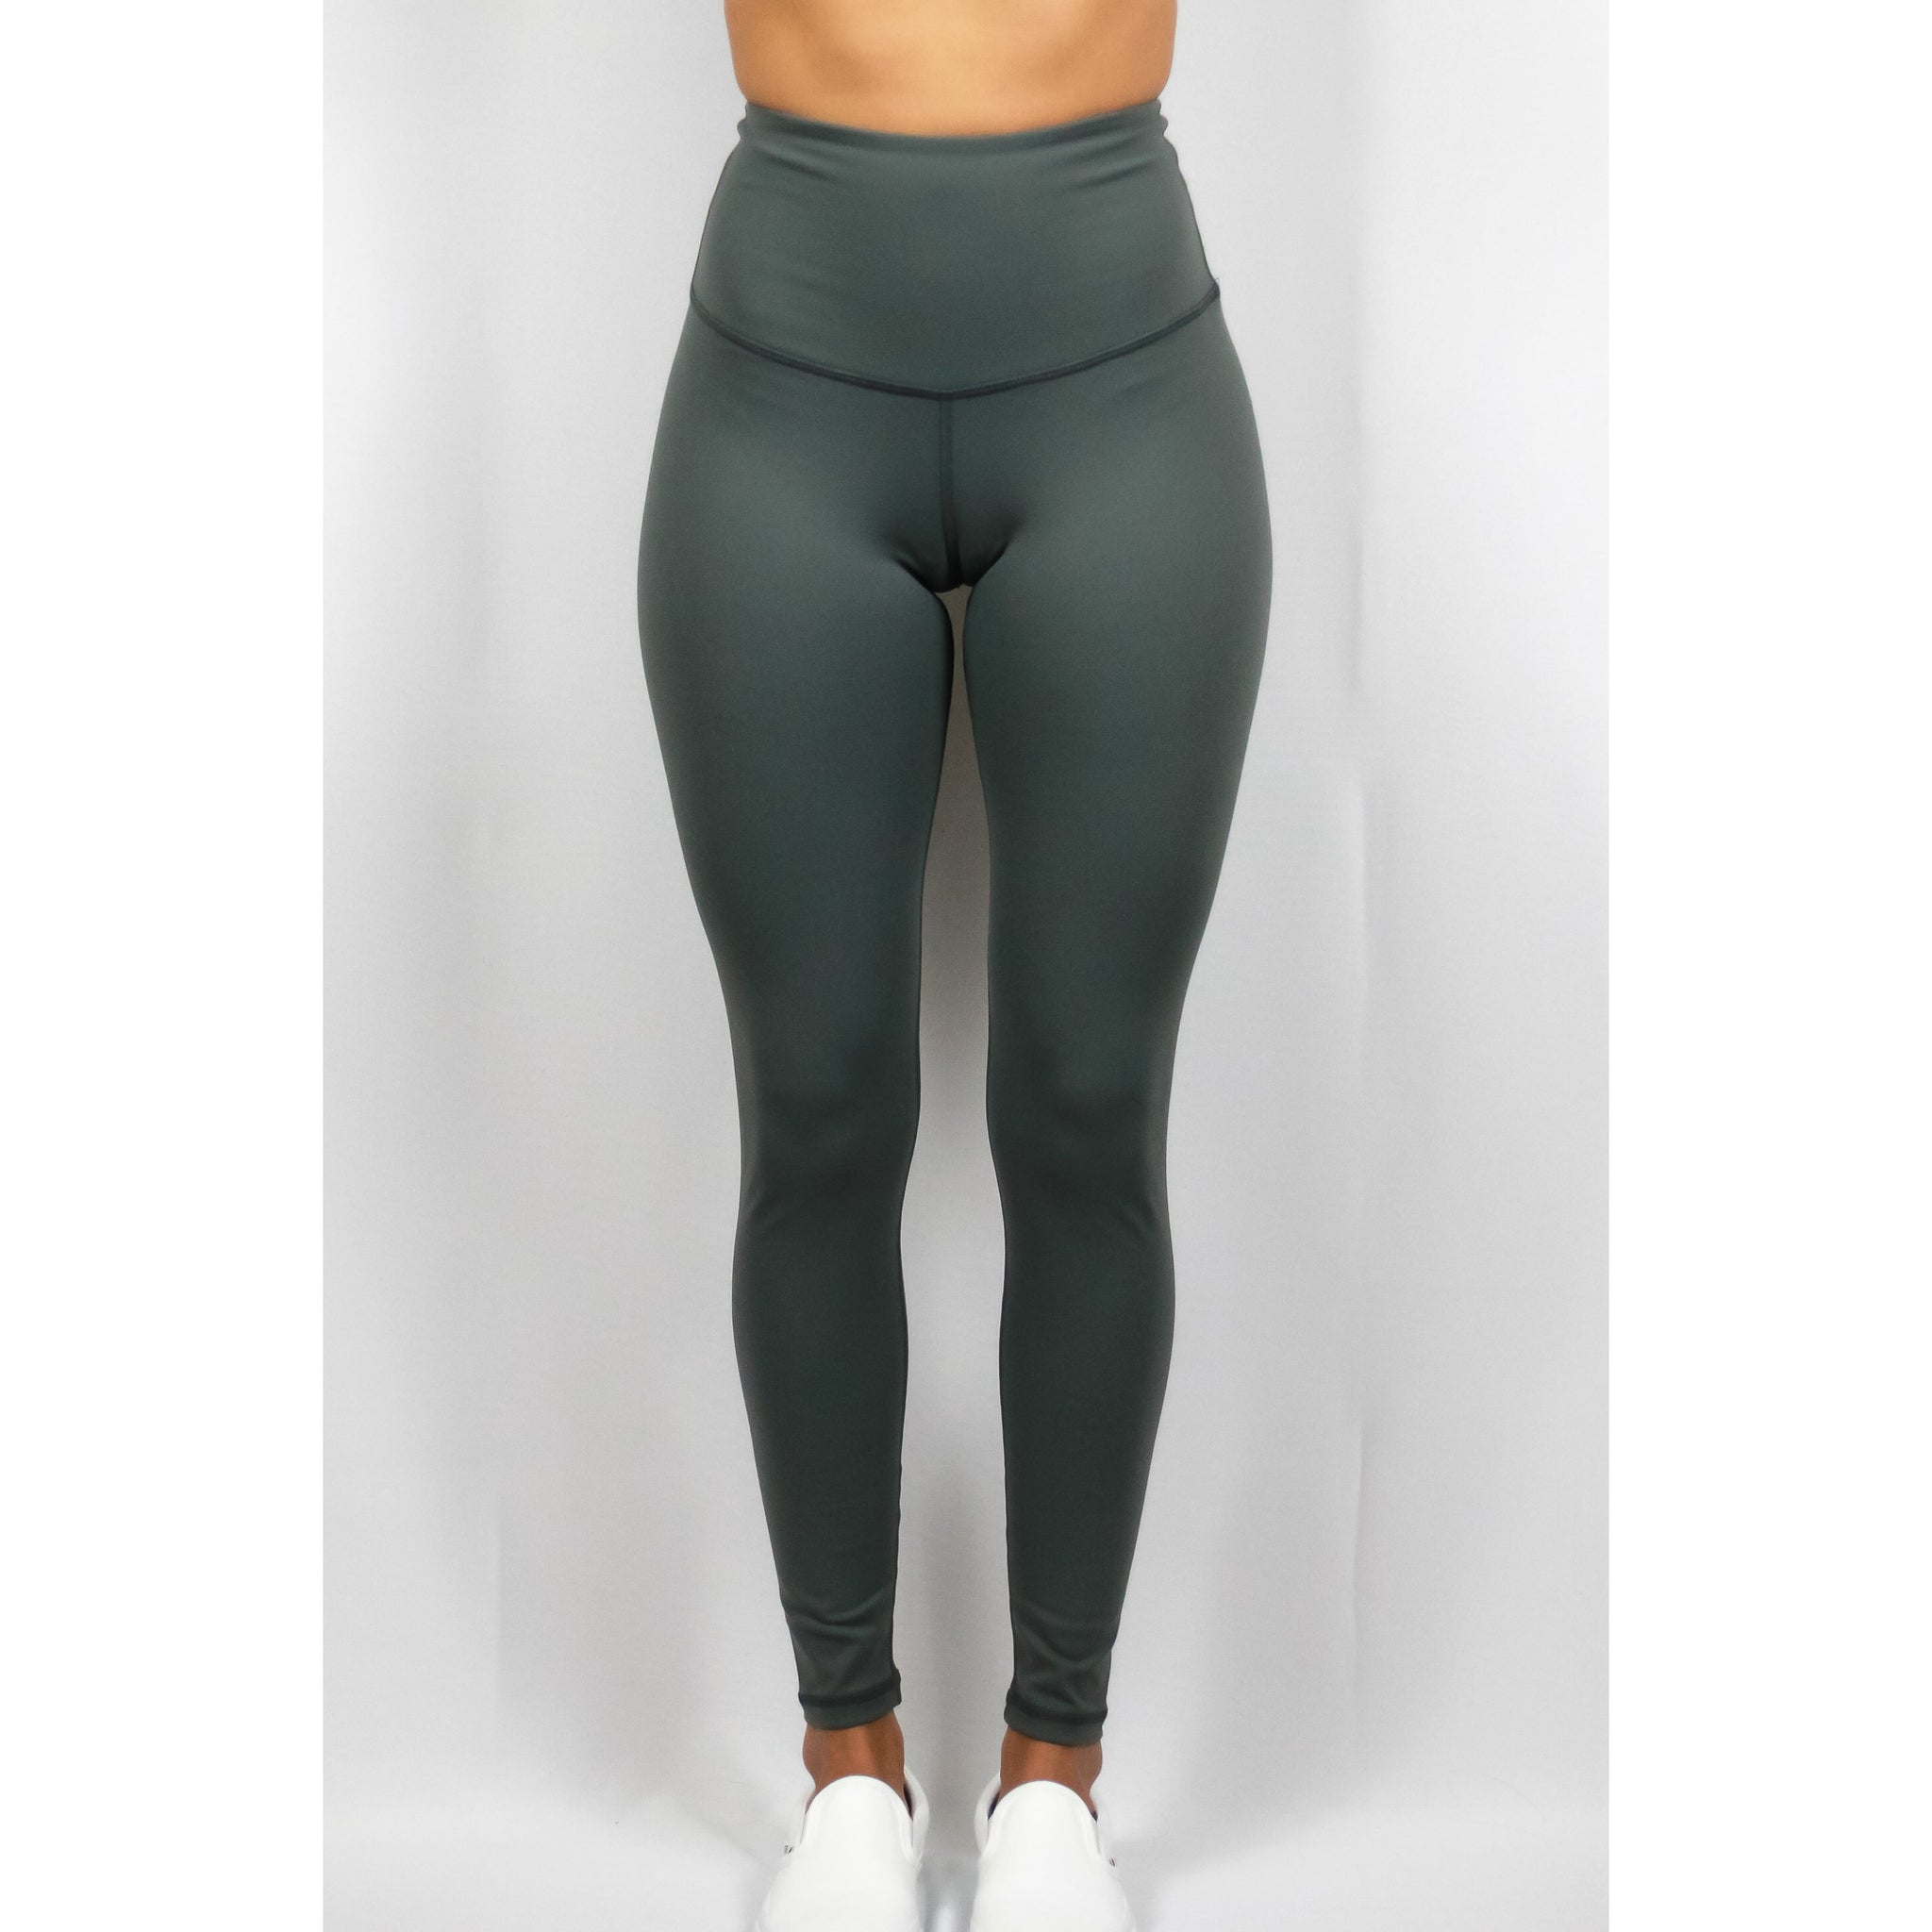 ASPIRE HIGH WAISTED LEGGINGS - CHARCOAL GREY